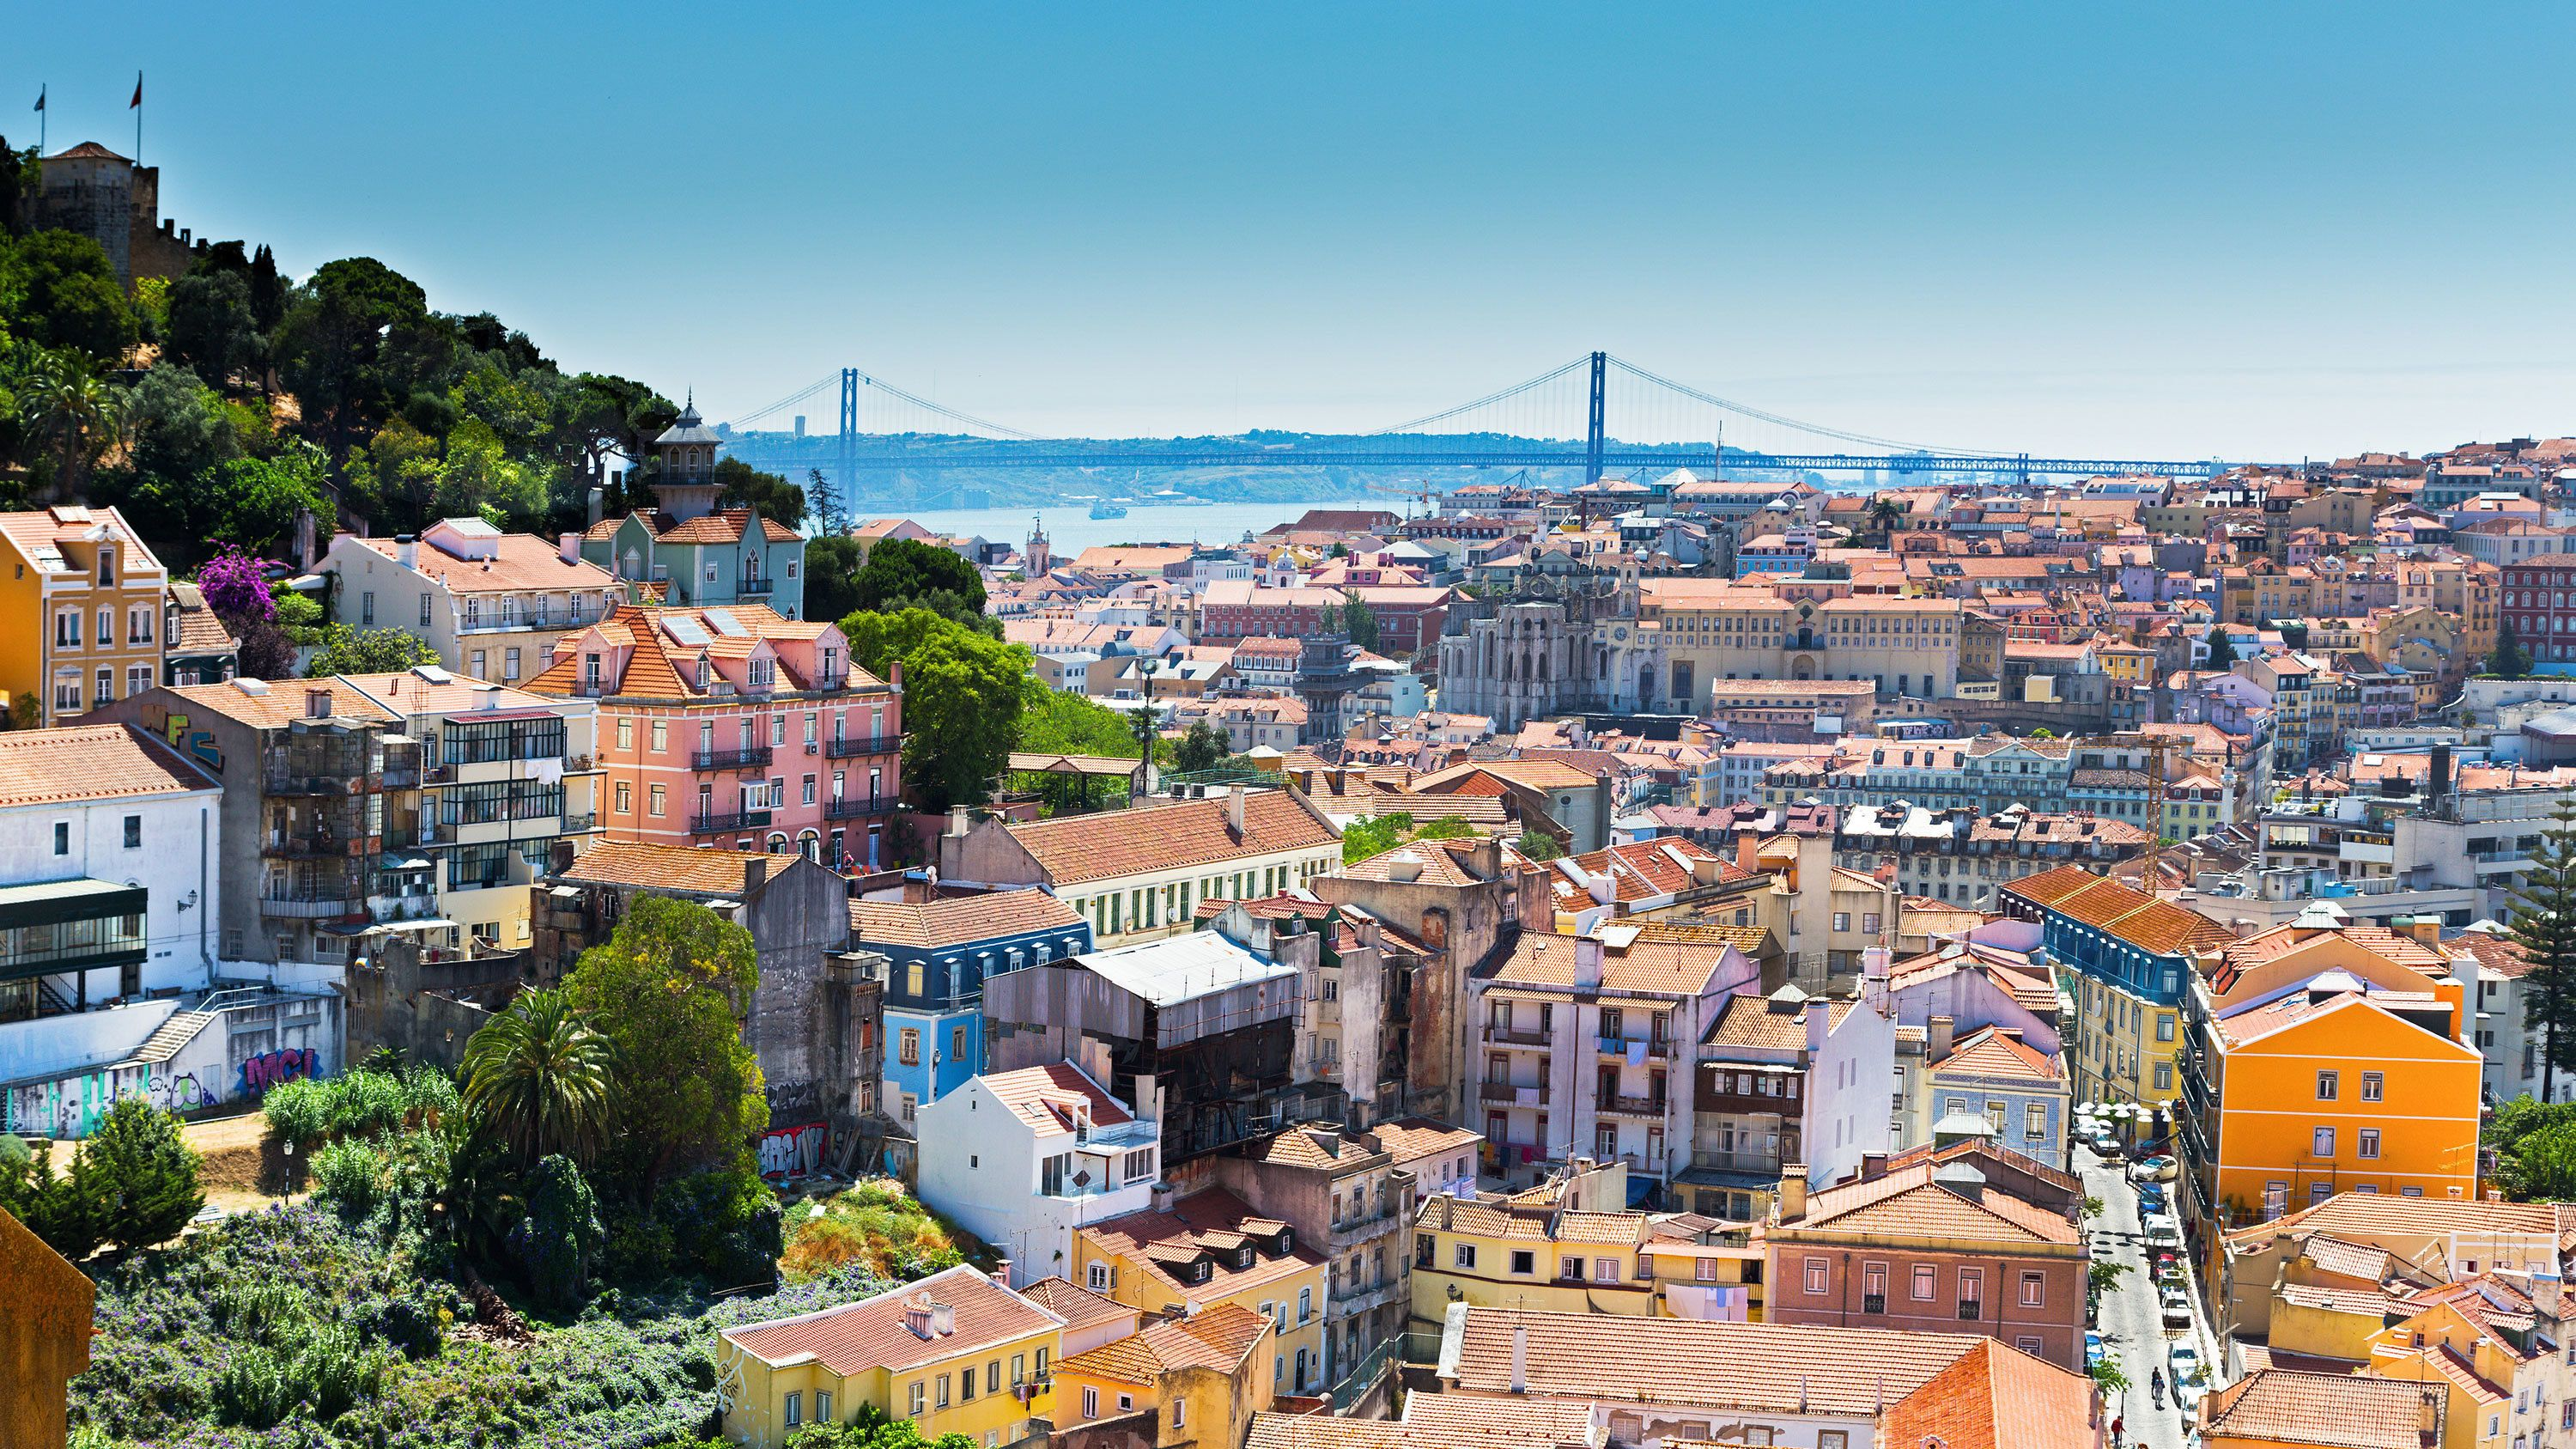 vibrant colored roofs in the city of Lisbon